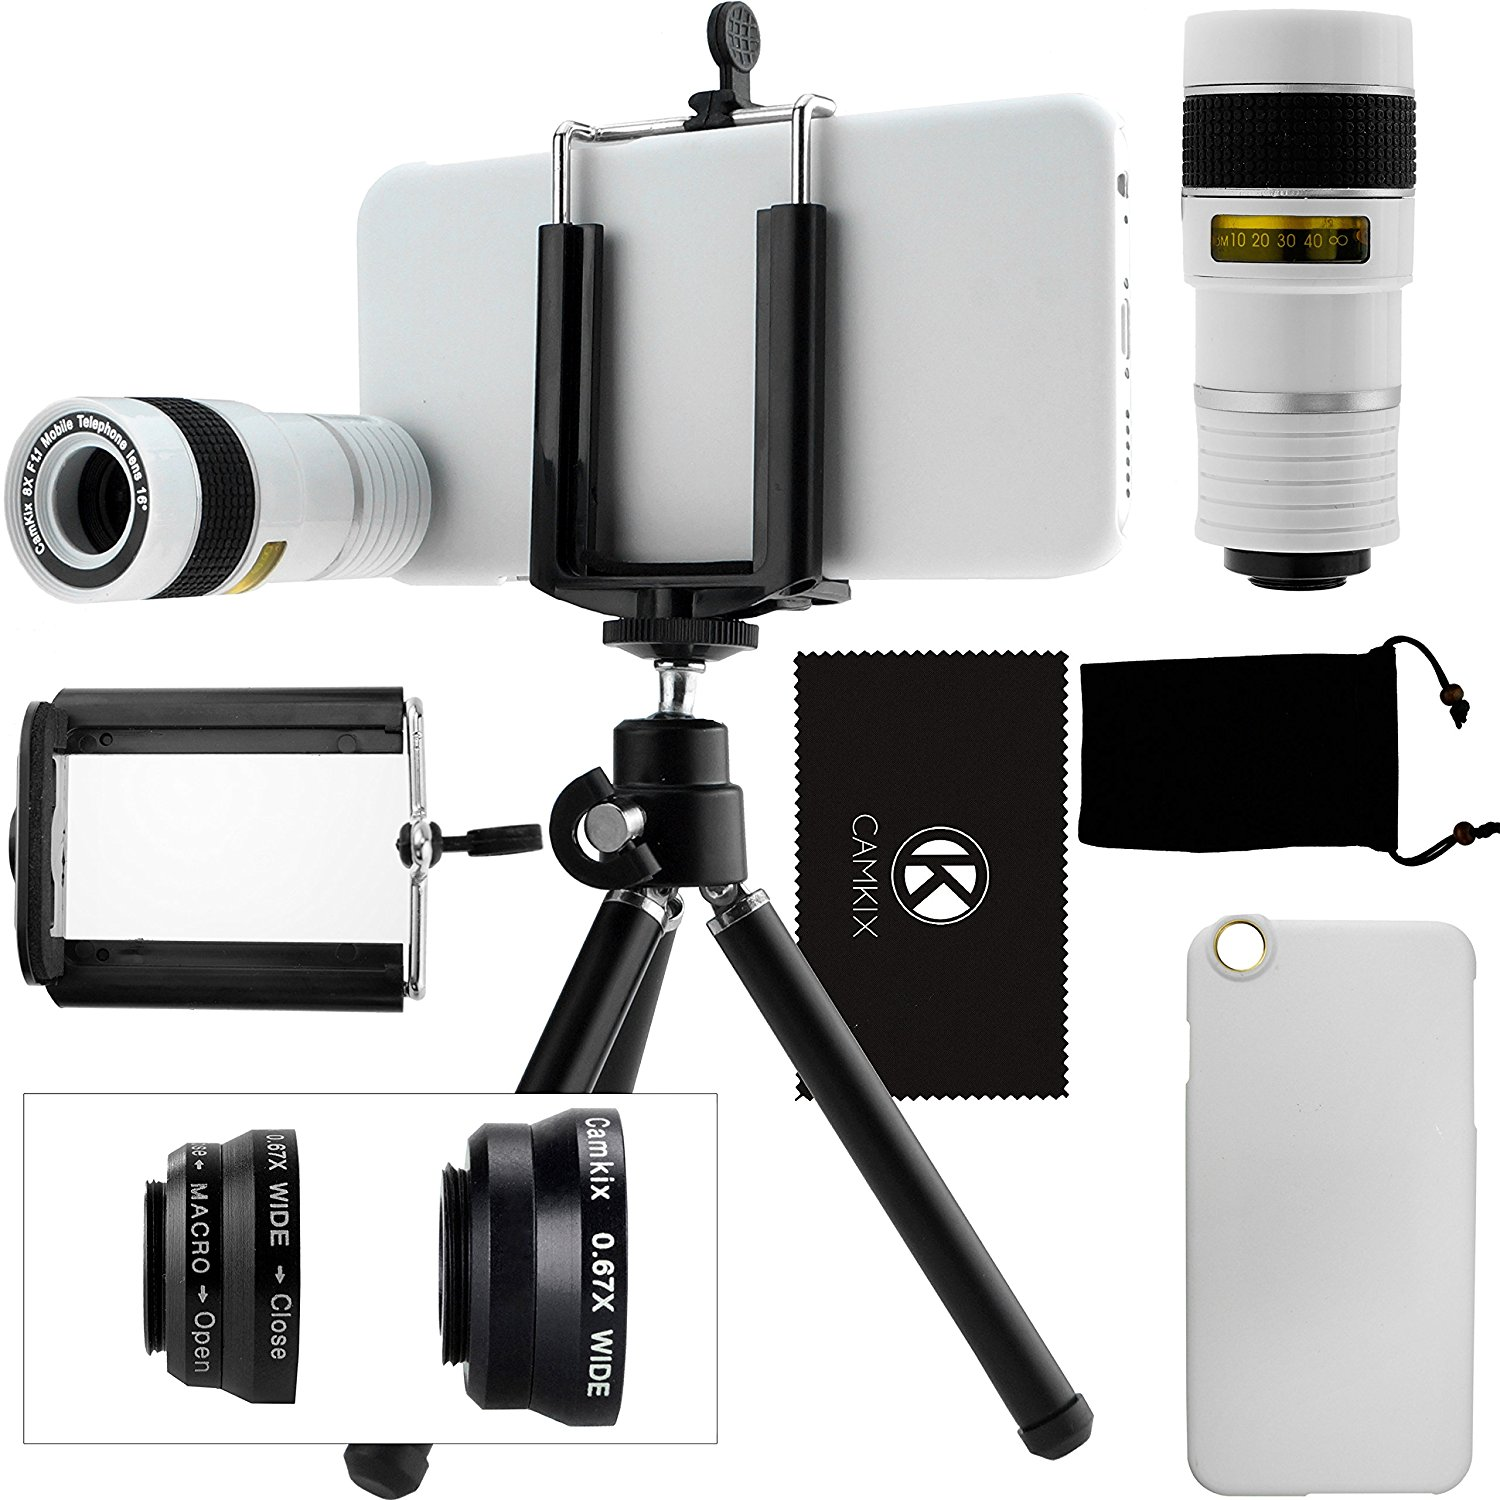 CamKix Camera Lens Kit for iPhone 6 / 6S